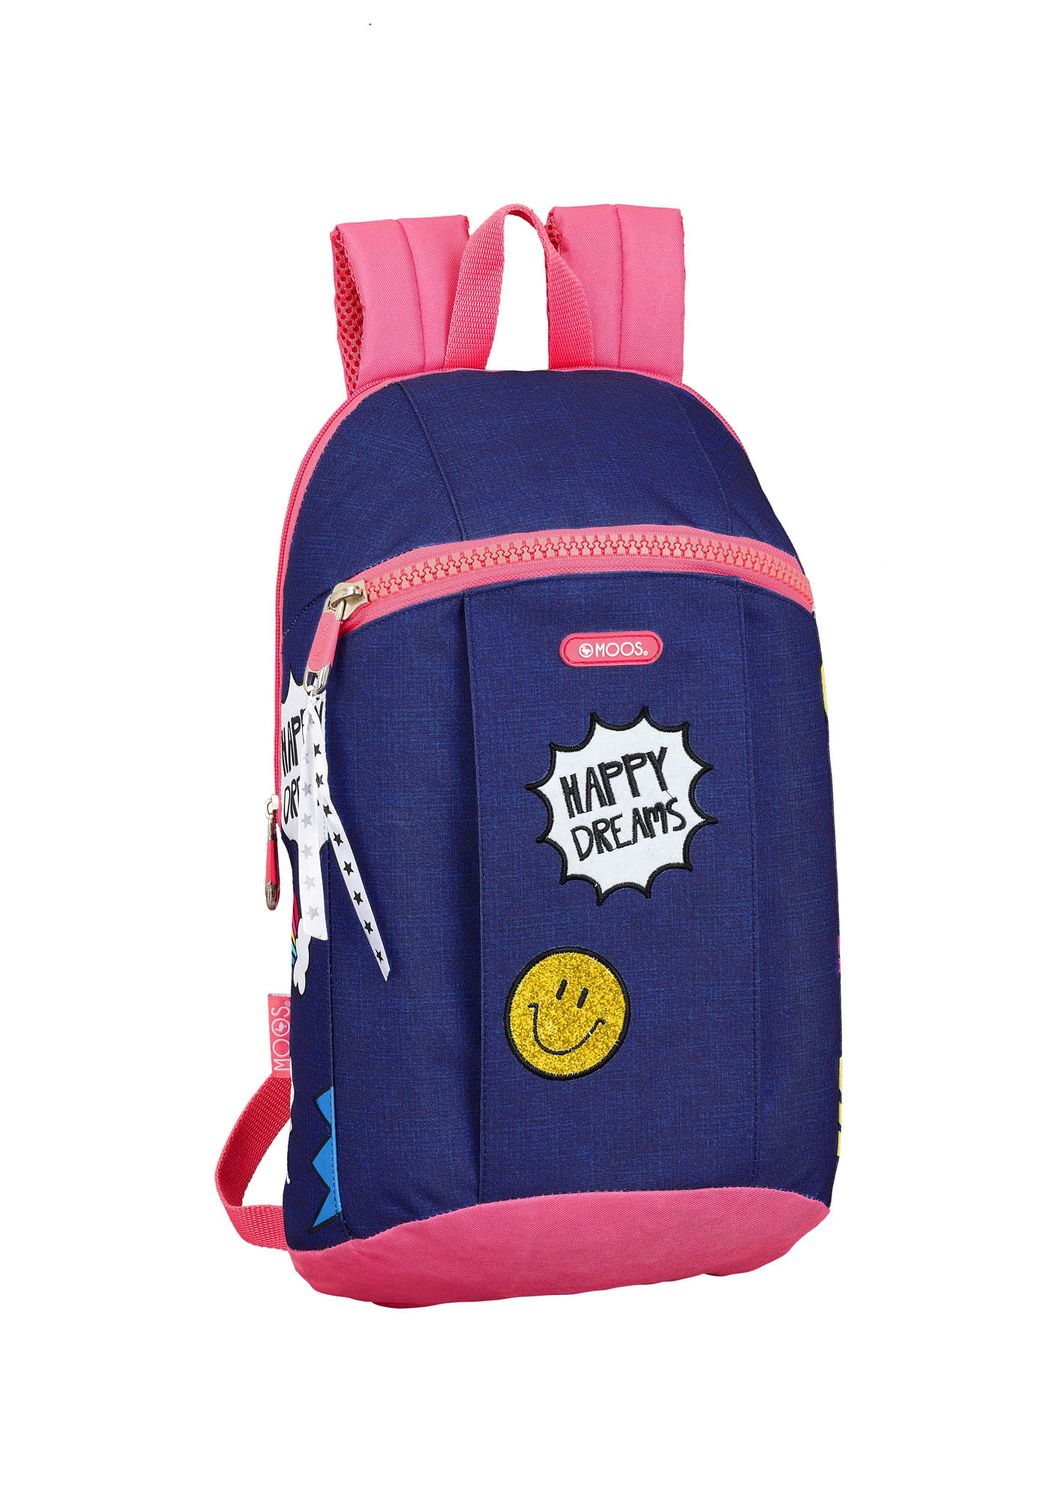 MOOS Backpack DREAMS 39cm – image 1